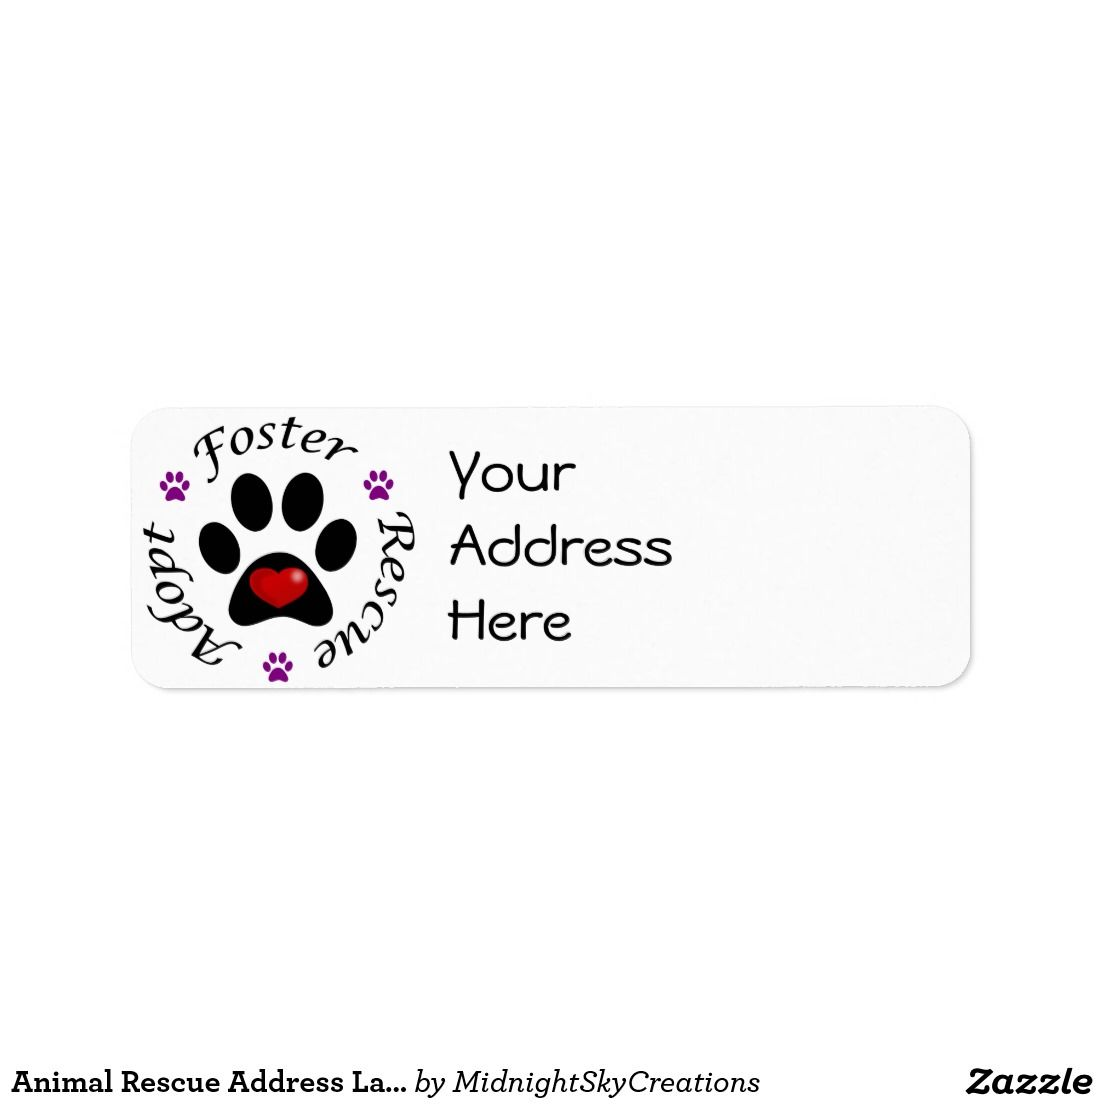 Animal Rescue Address Labels These Feature A Paw Print With Red Heart Inside Promotes The Words Adopt